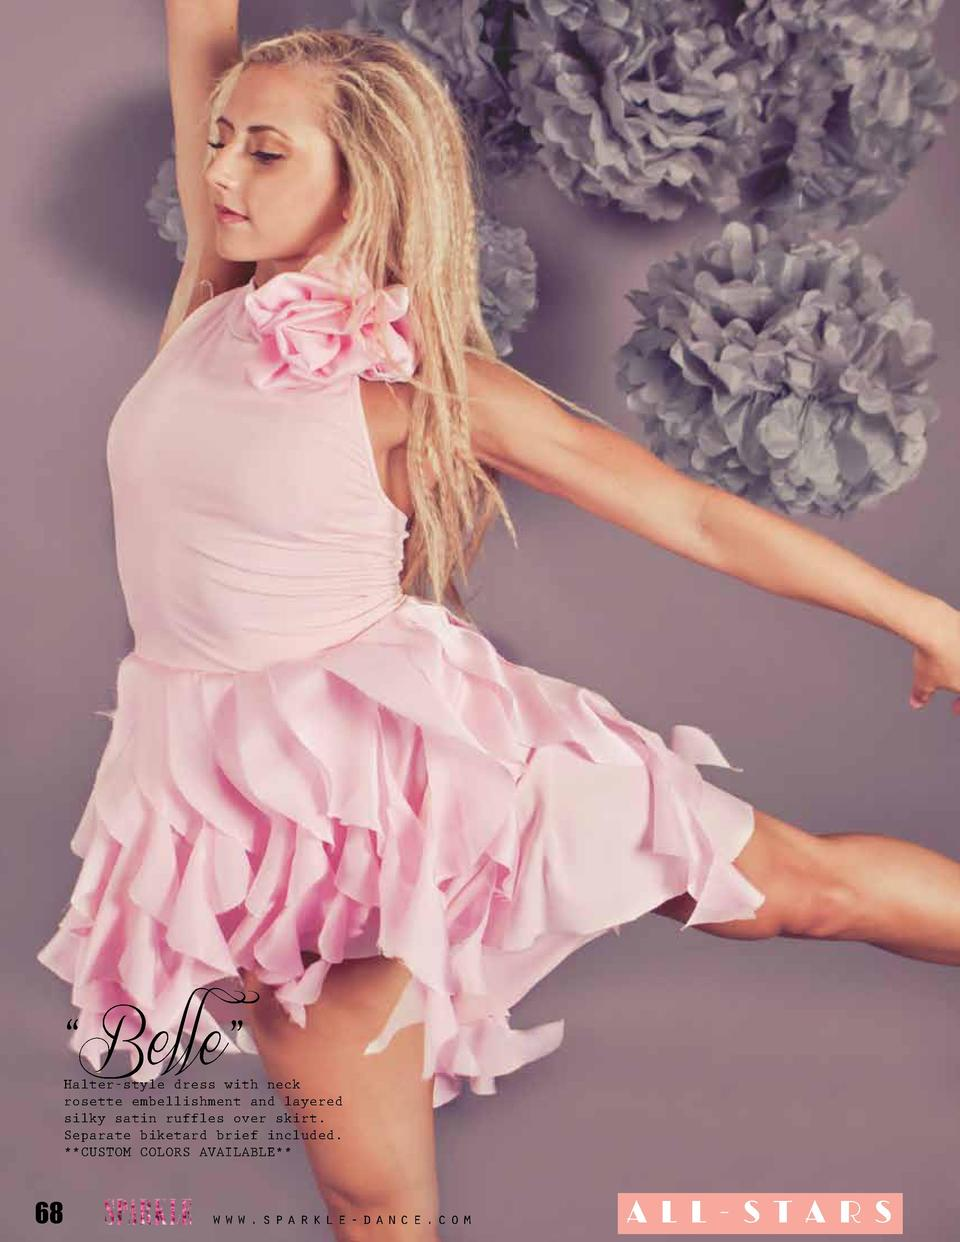 Belle     Halter-style dress with neck rosette embellishment and layered silky satin ruffles over skirt. Separate biket...